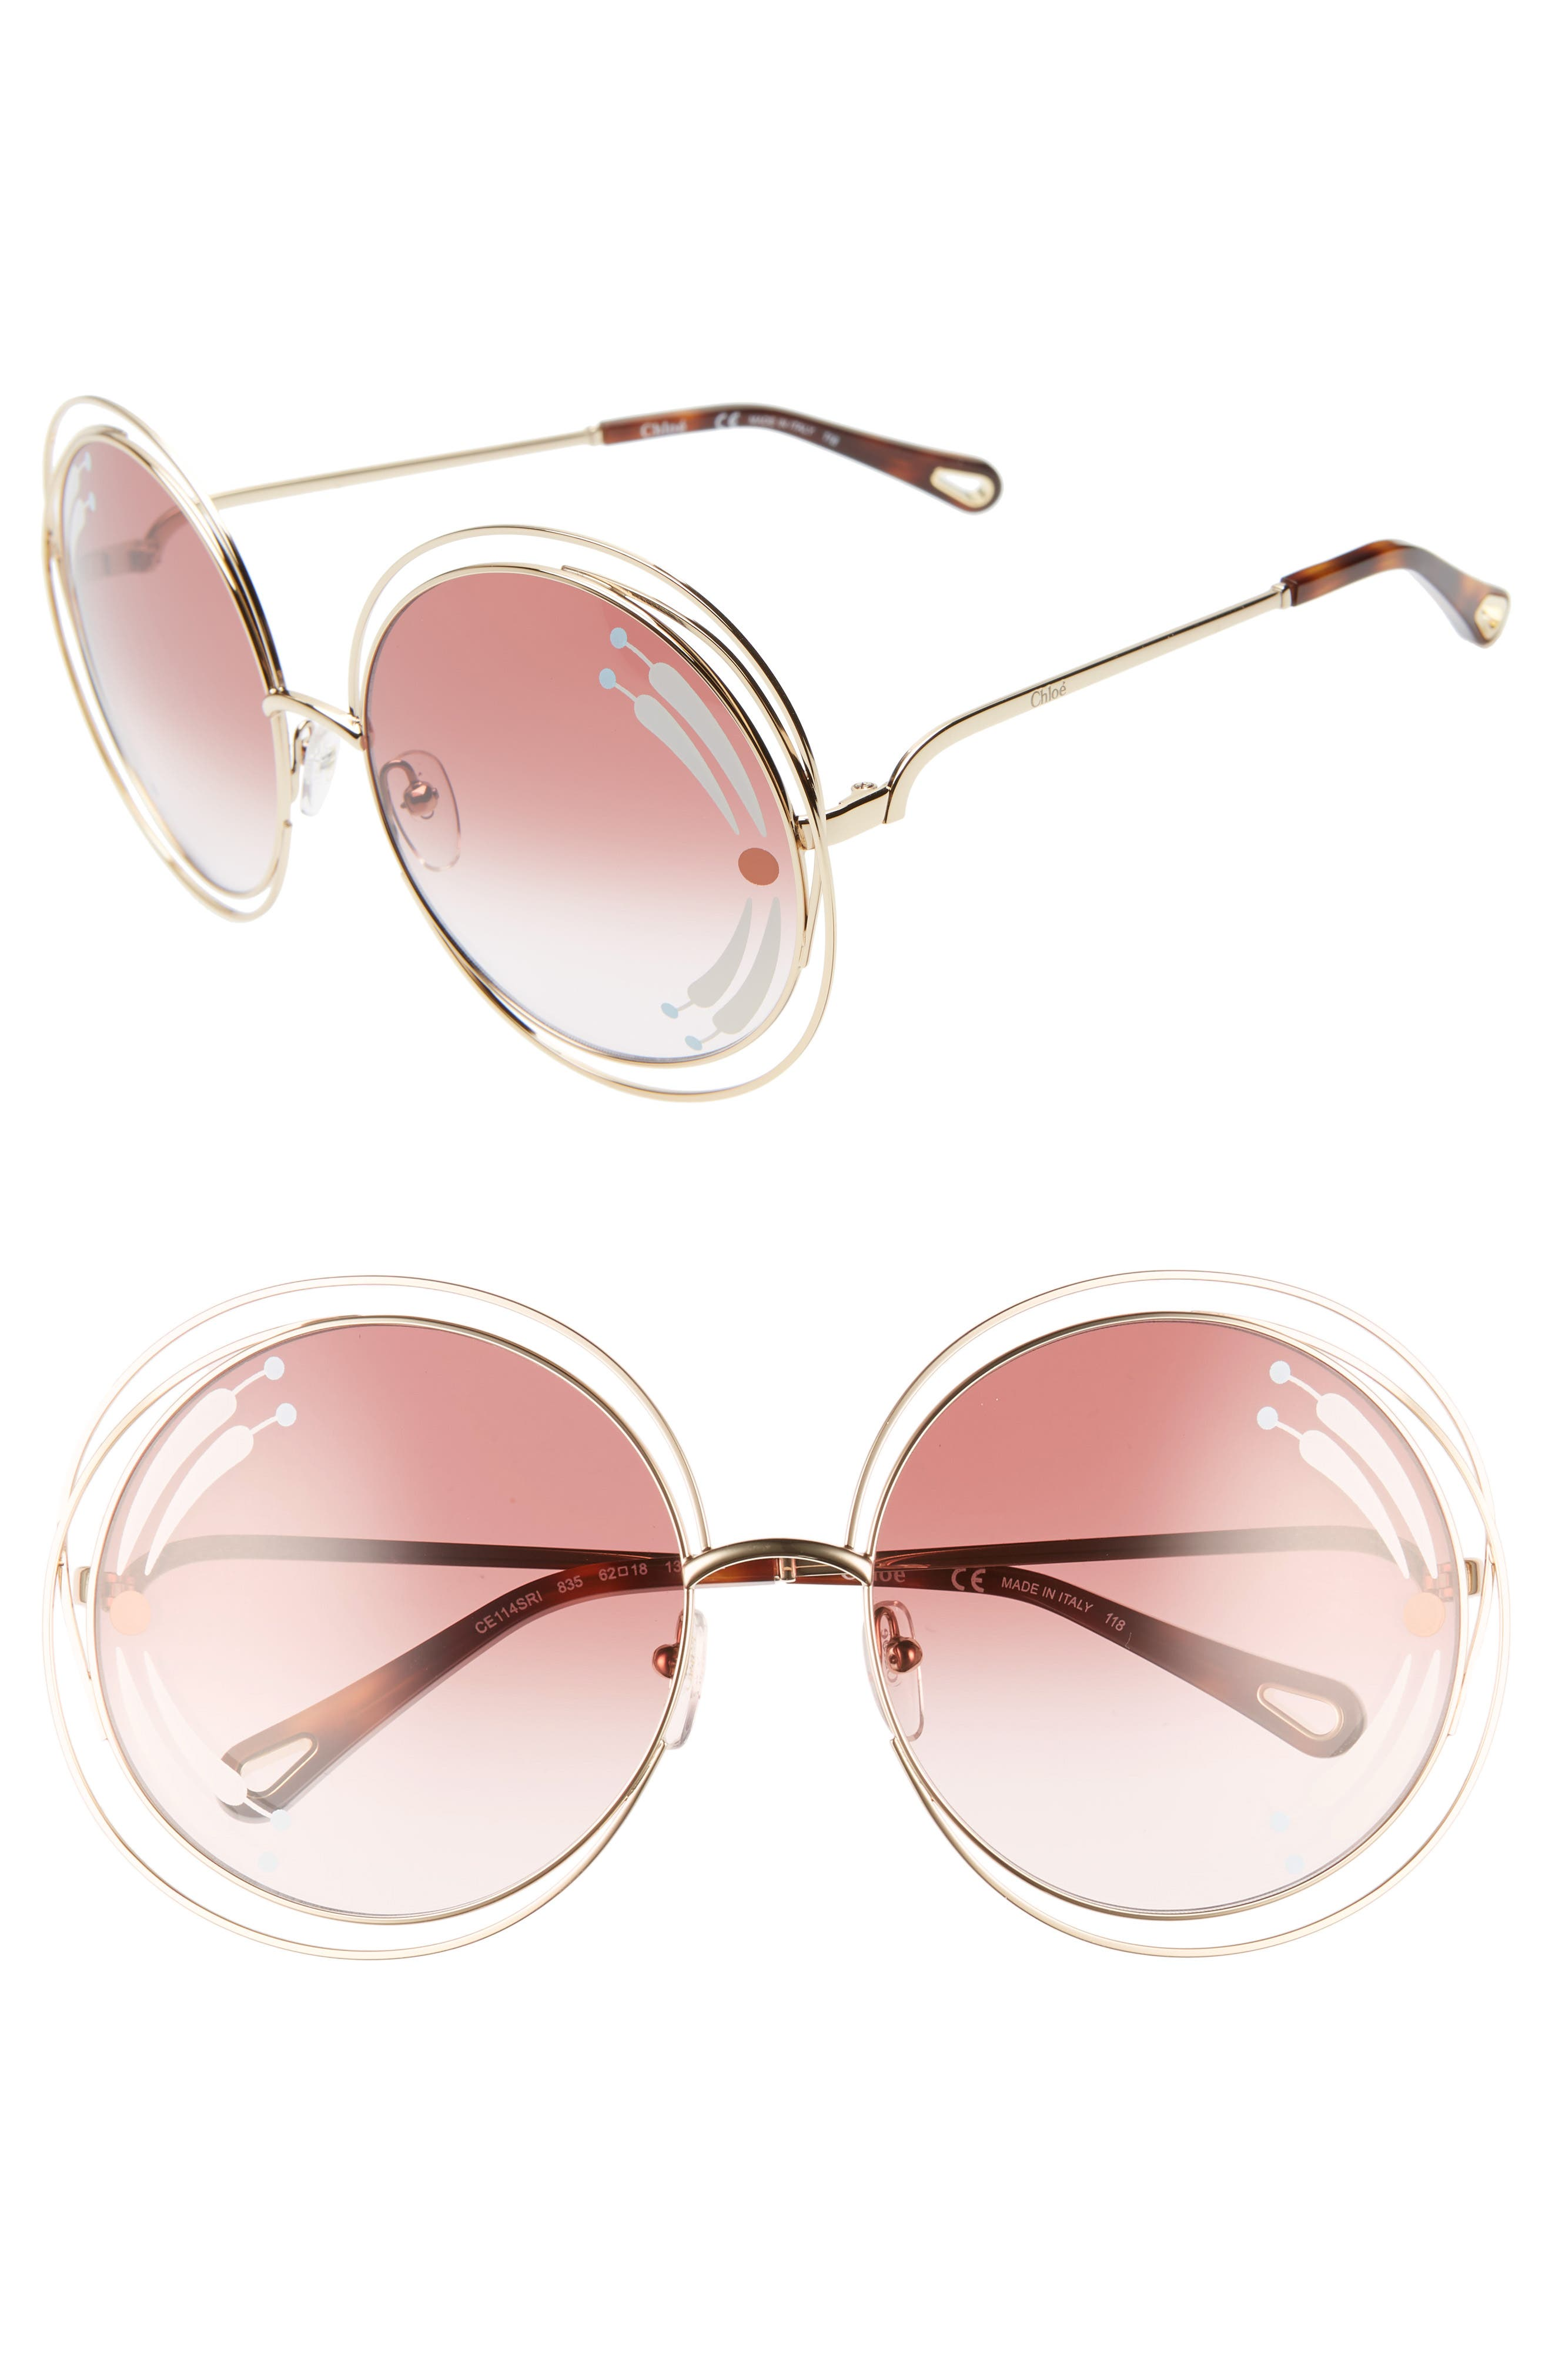 Chloe Carlina 62Mm Oversize Round Sunglasses - Gold/ Burgundy W Print